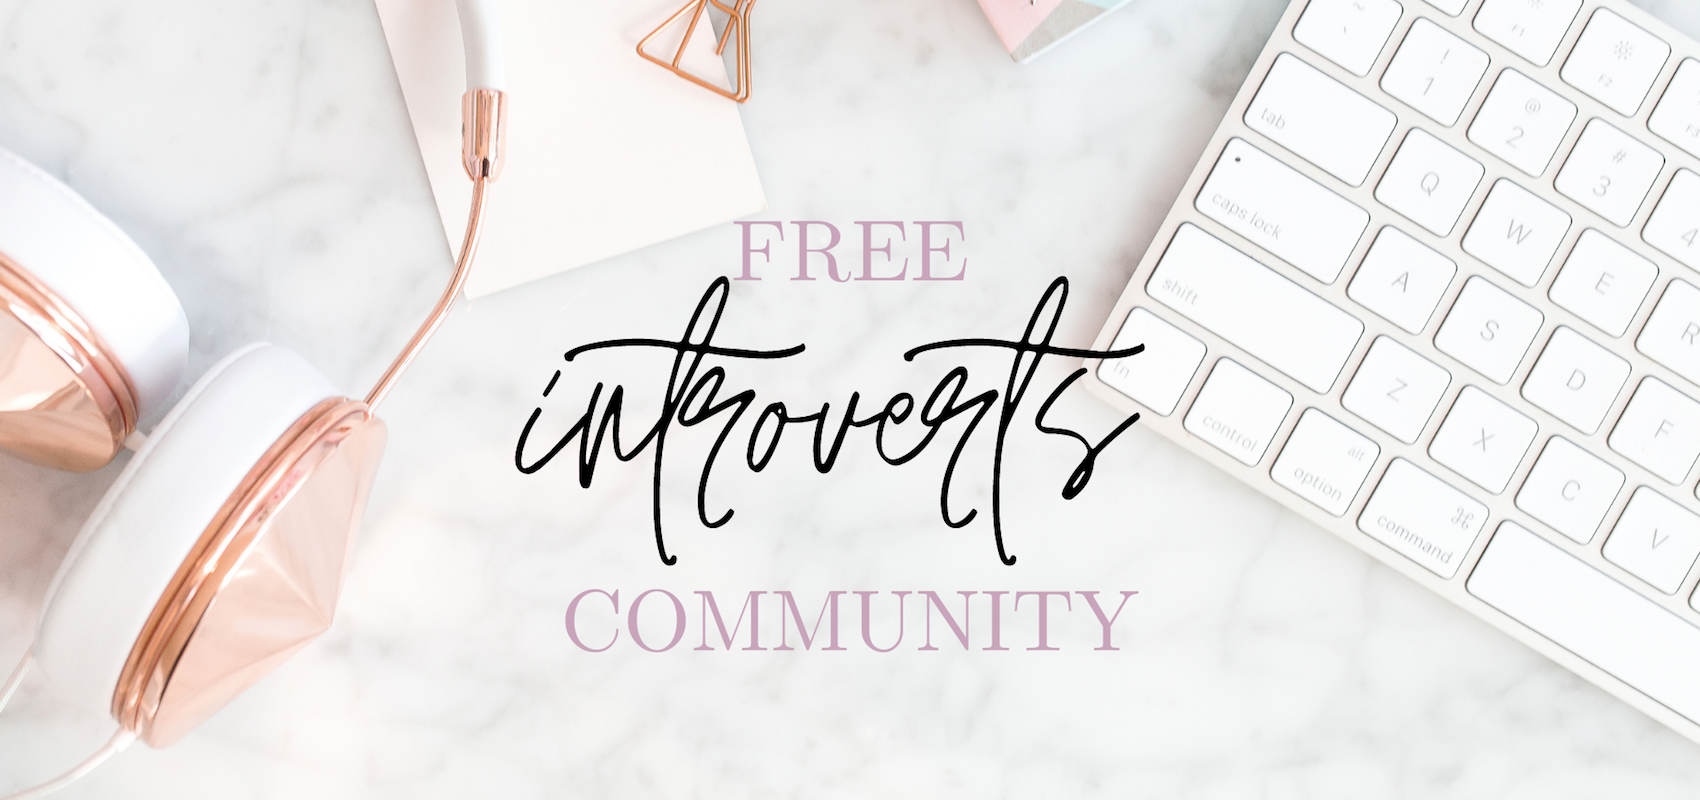 free introverts community